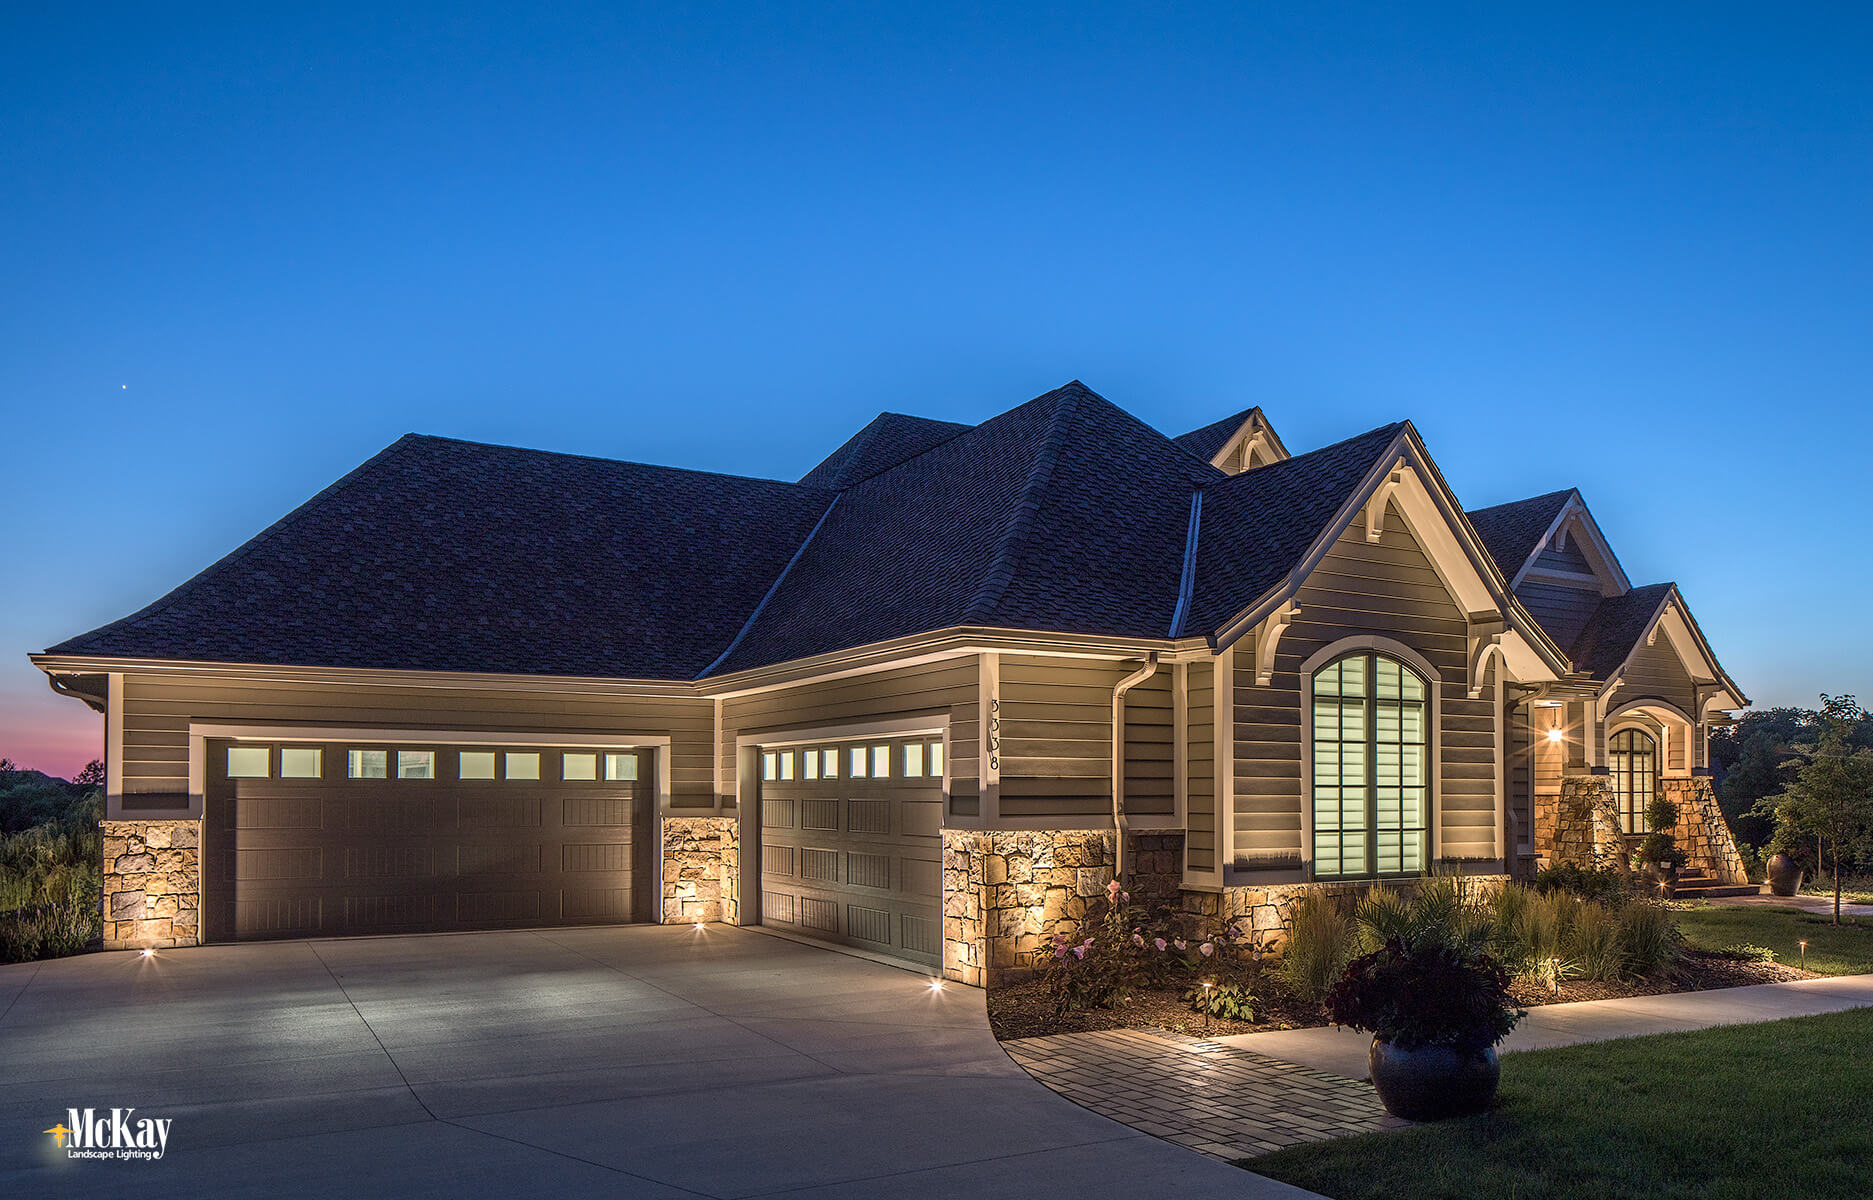 The garage is off to the side and not visible from the front door. Without light, the garage would be very dark and would have left the homeowners vulnerable. Click to learn more about this outdoor lighting design... | McKay Landscape Lighting - Omaha, Nebraska